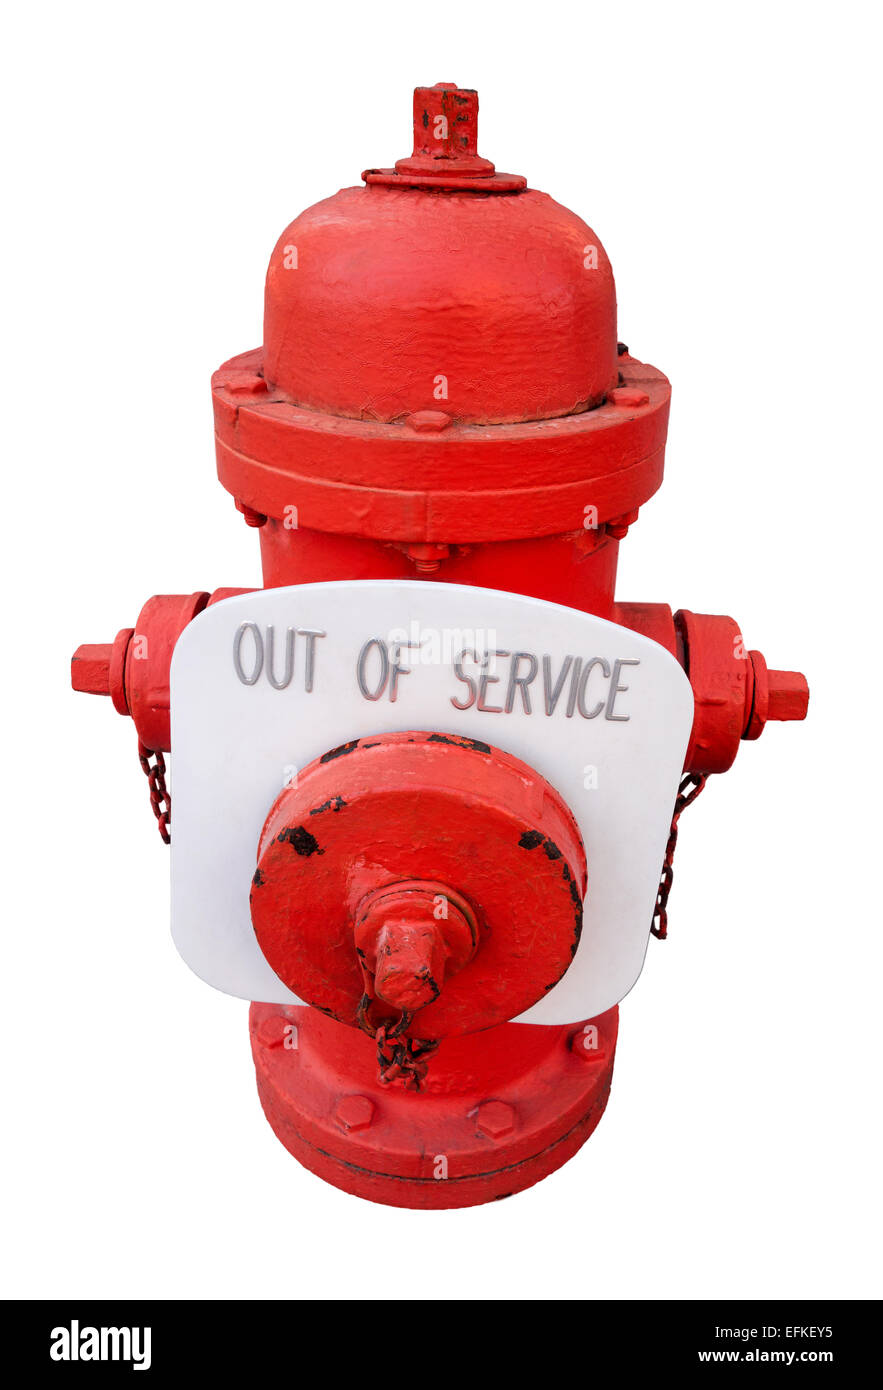 http://c7.alamy.com/comp/EFKEY5/red-us-fire-hydrant-with-out-of-service-sign-not-working-broken-unsafe-EFKEY5.jpg